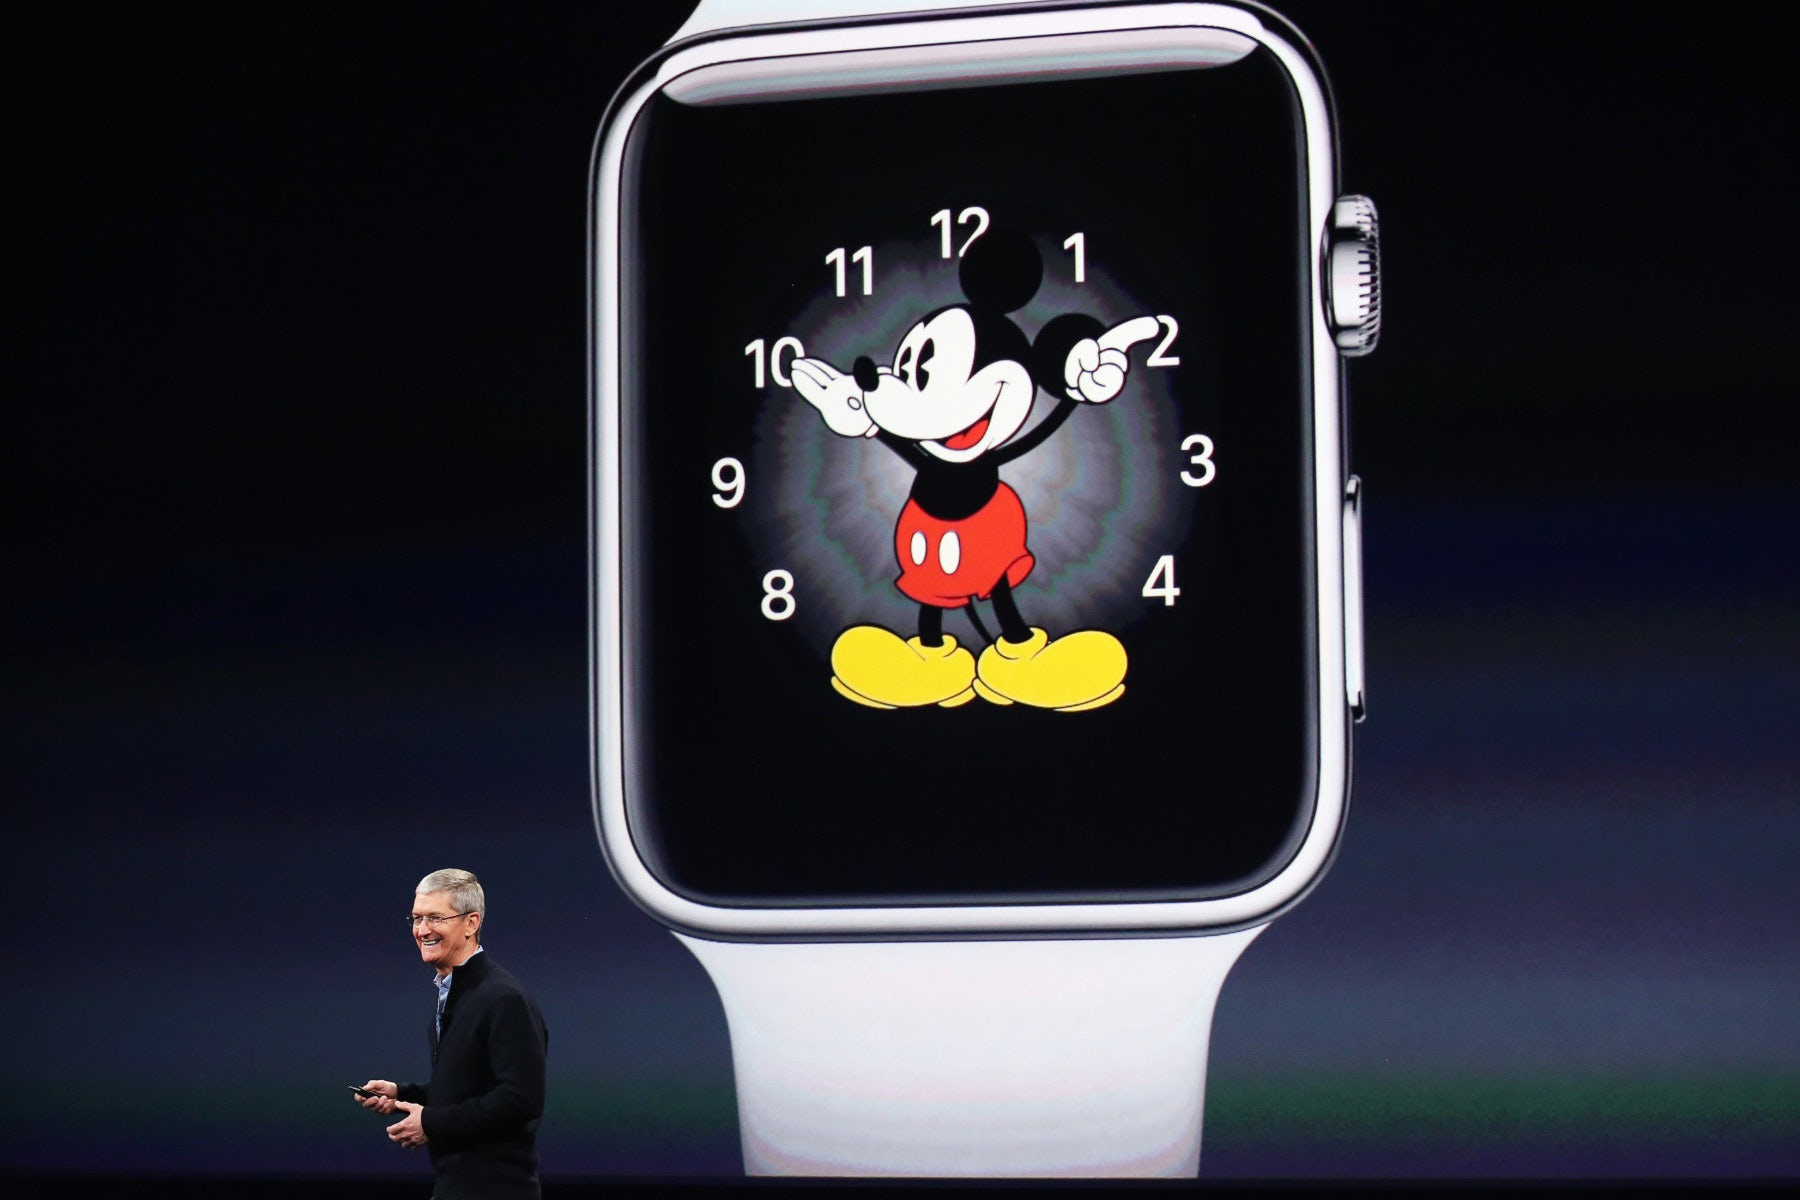 Apple CEO Tim Cook introduces the Apple Watch | Source: Reuters